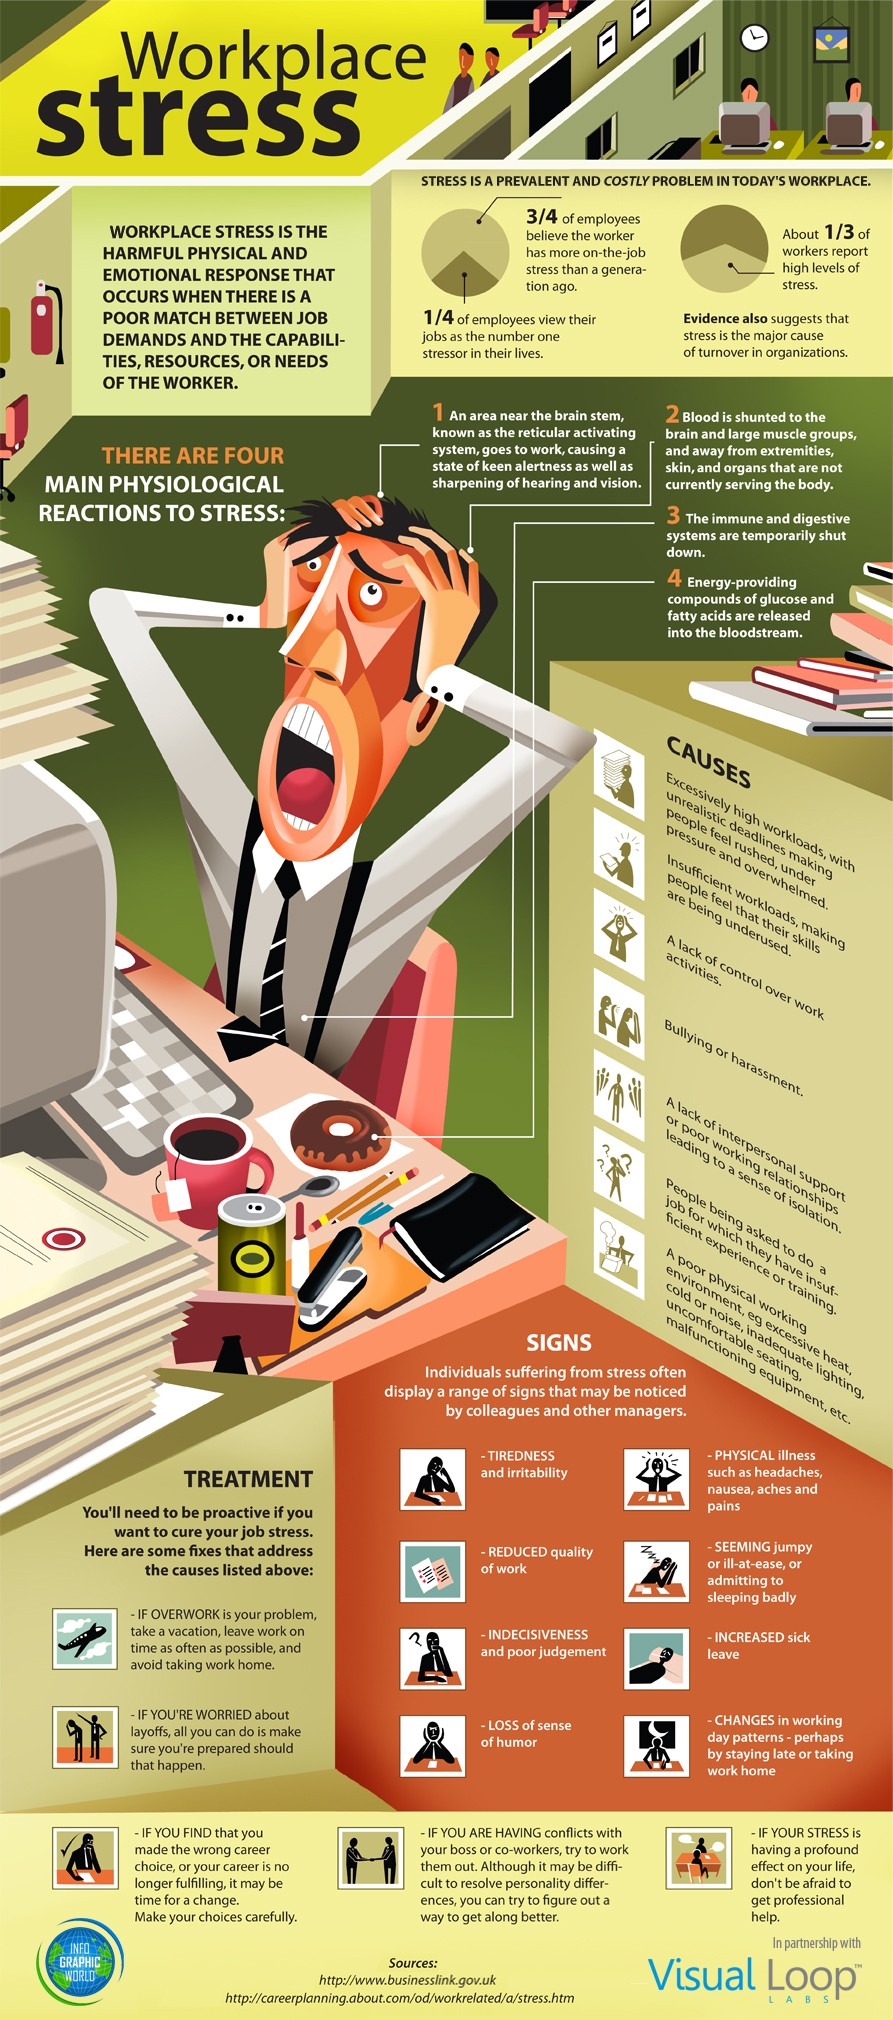 Workplace Stress: Signs, Causes & Treatment - ComplianceandSafety.com